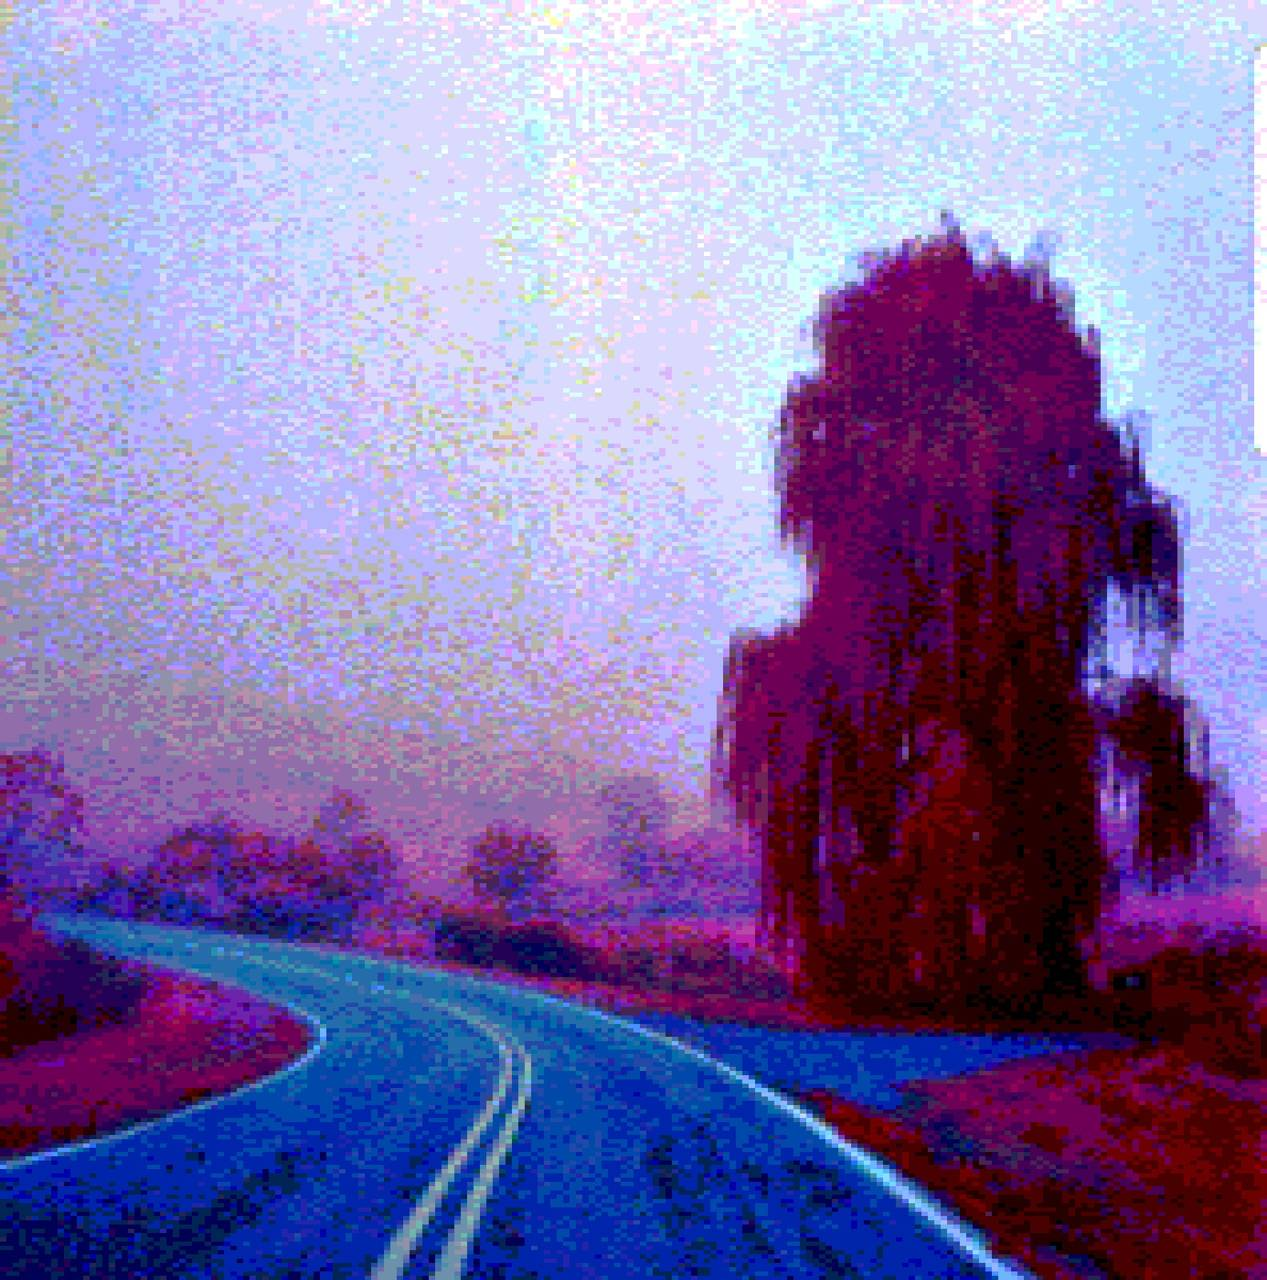 8bit foggy road